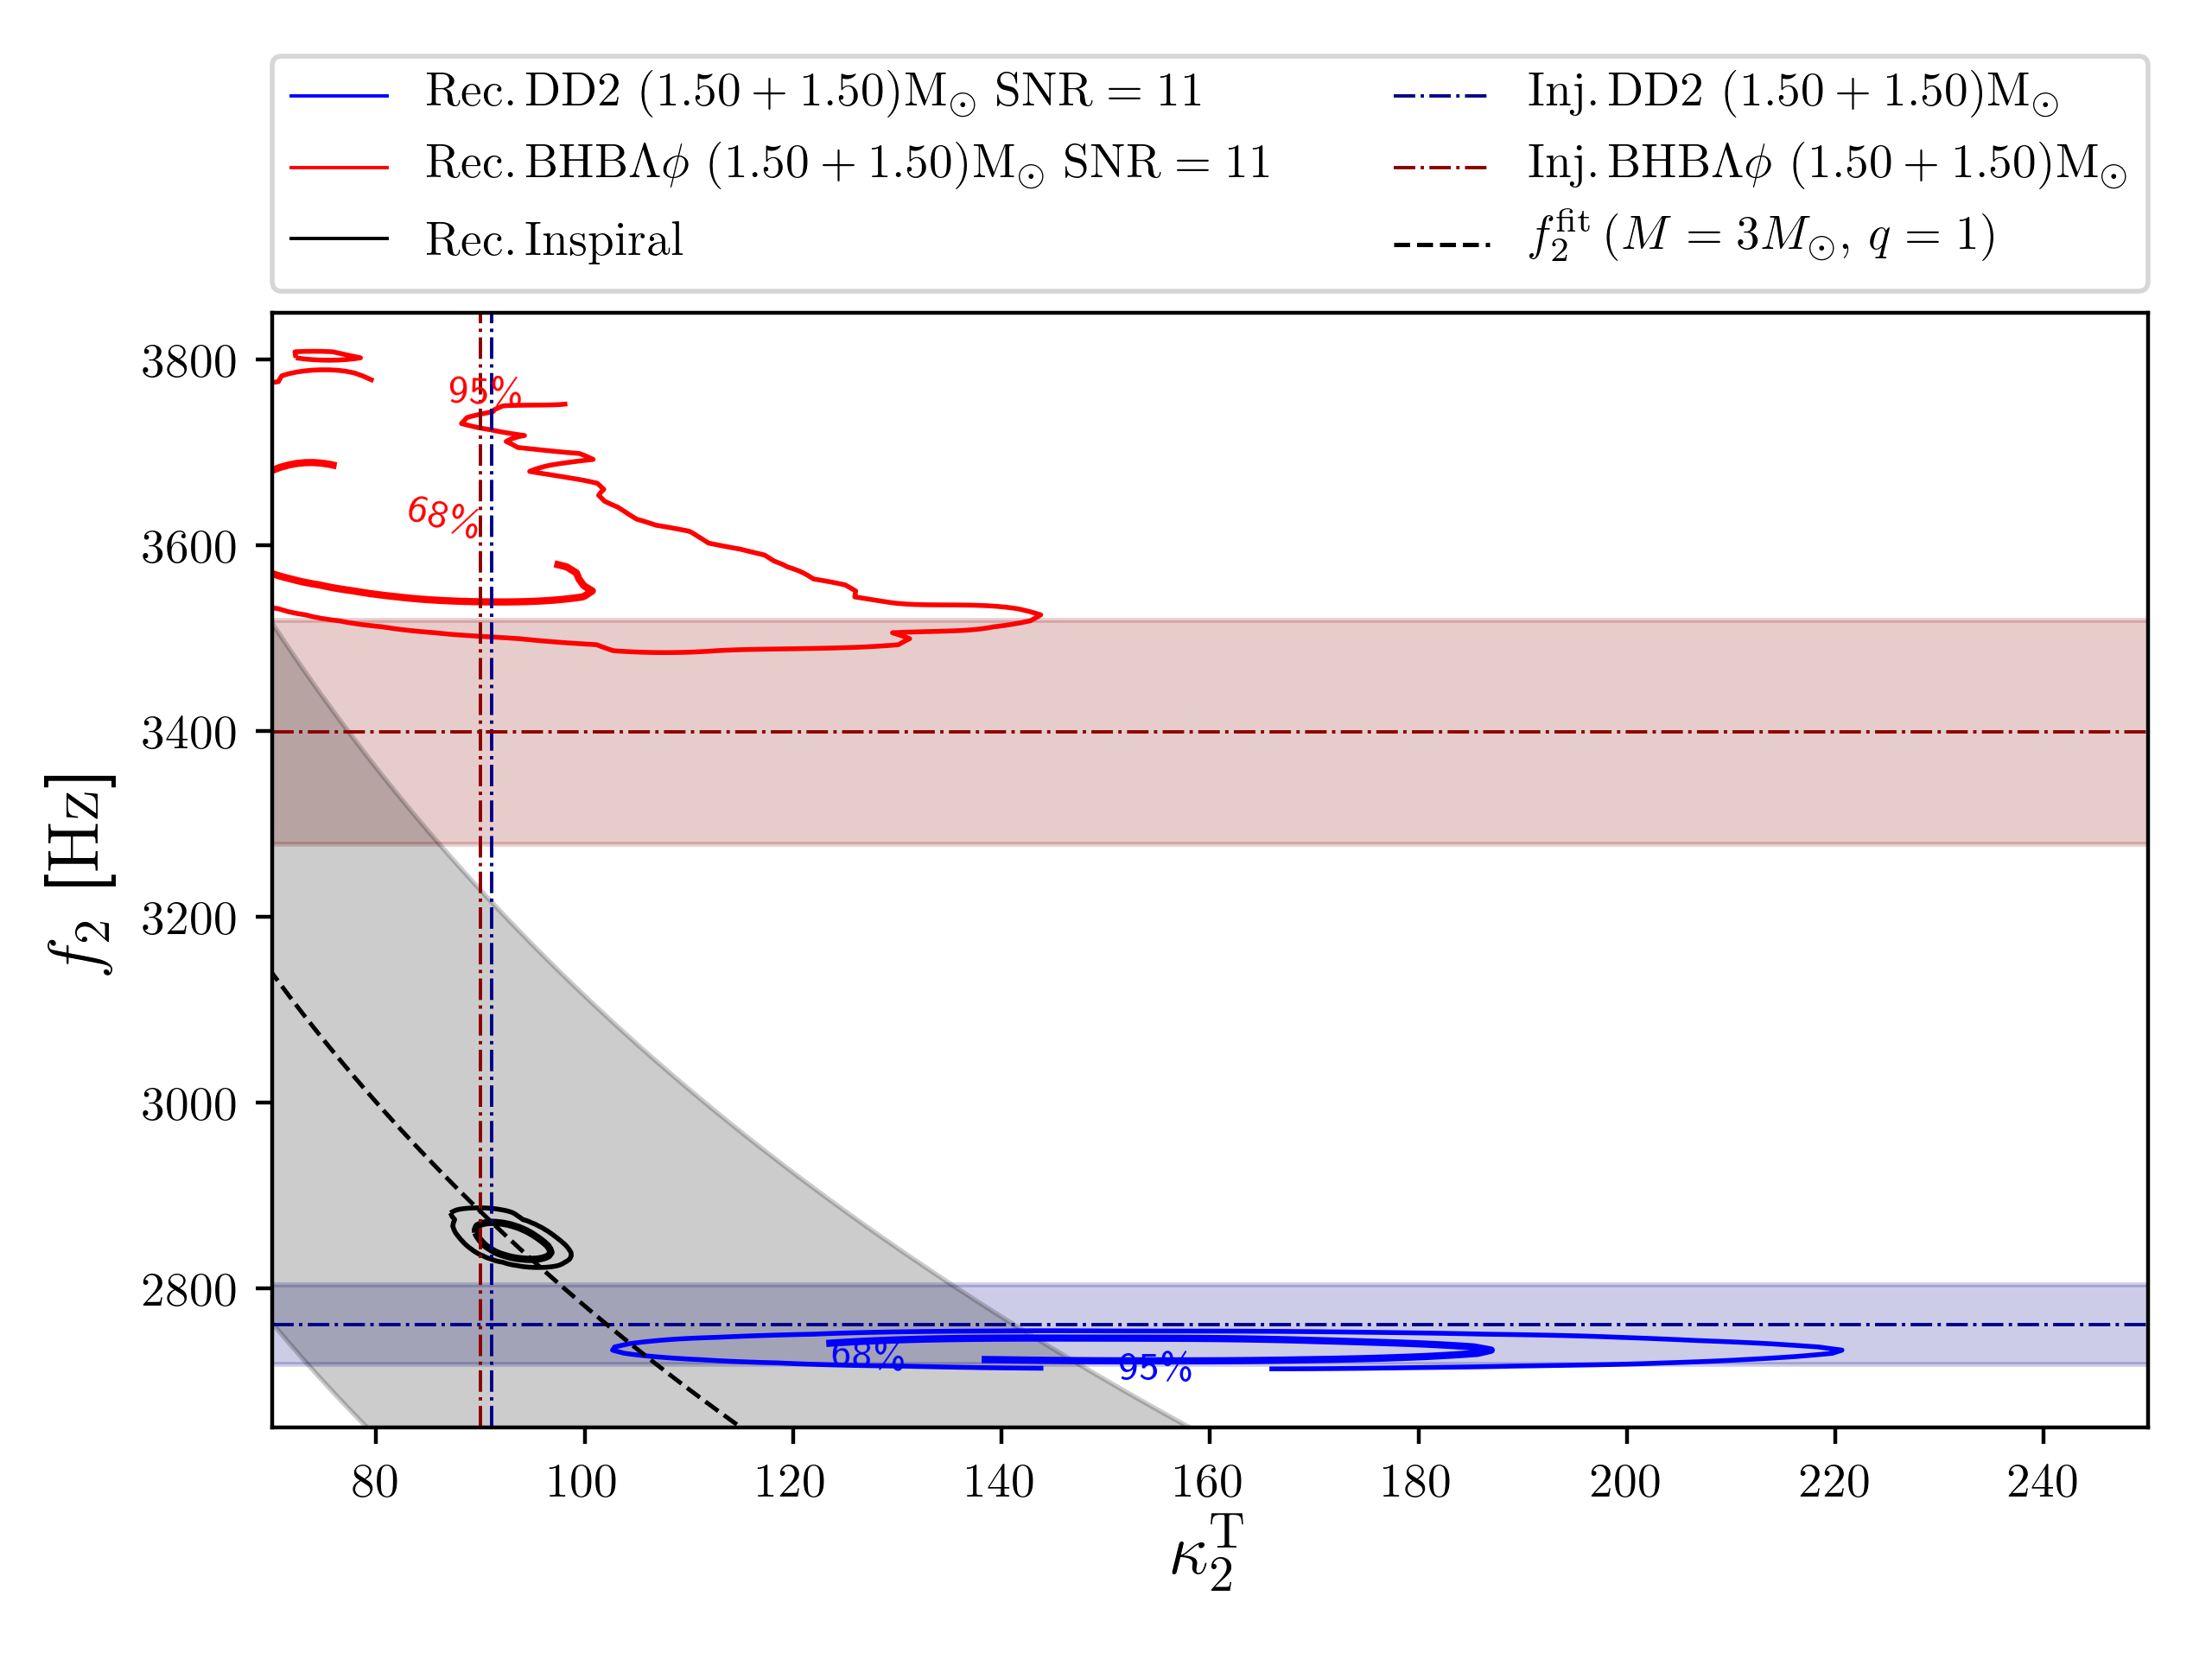 Inference of EOS properties at extreme densities. Left panel: marginalized posterior distributions of